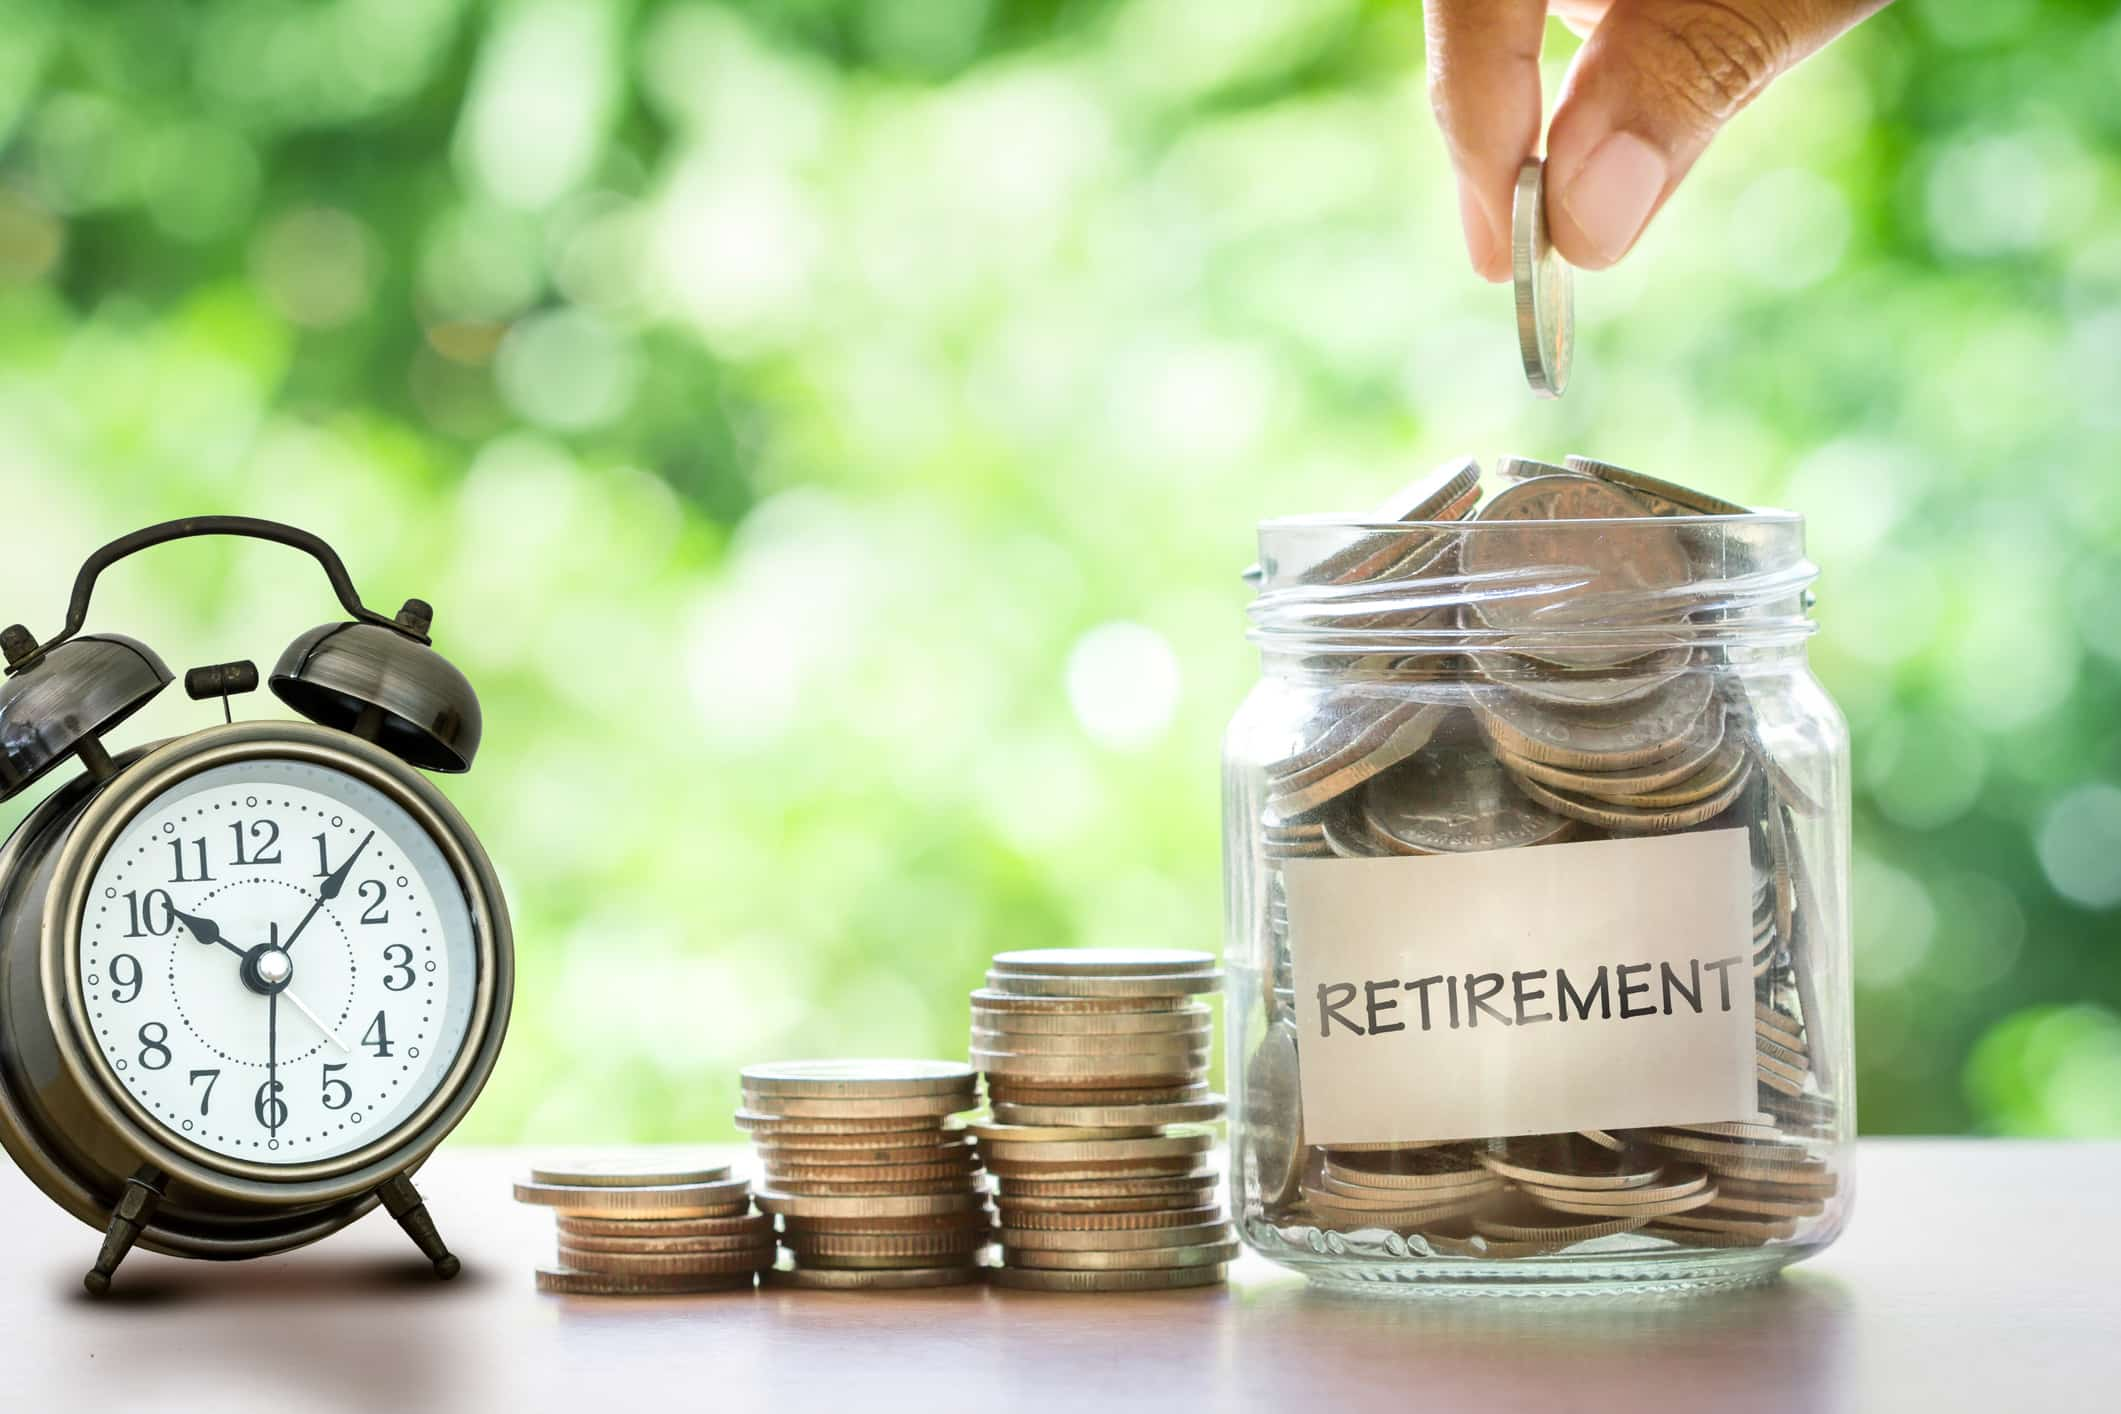 Transferring pensions in an increasingly complex world